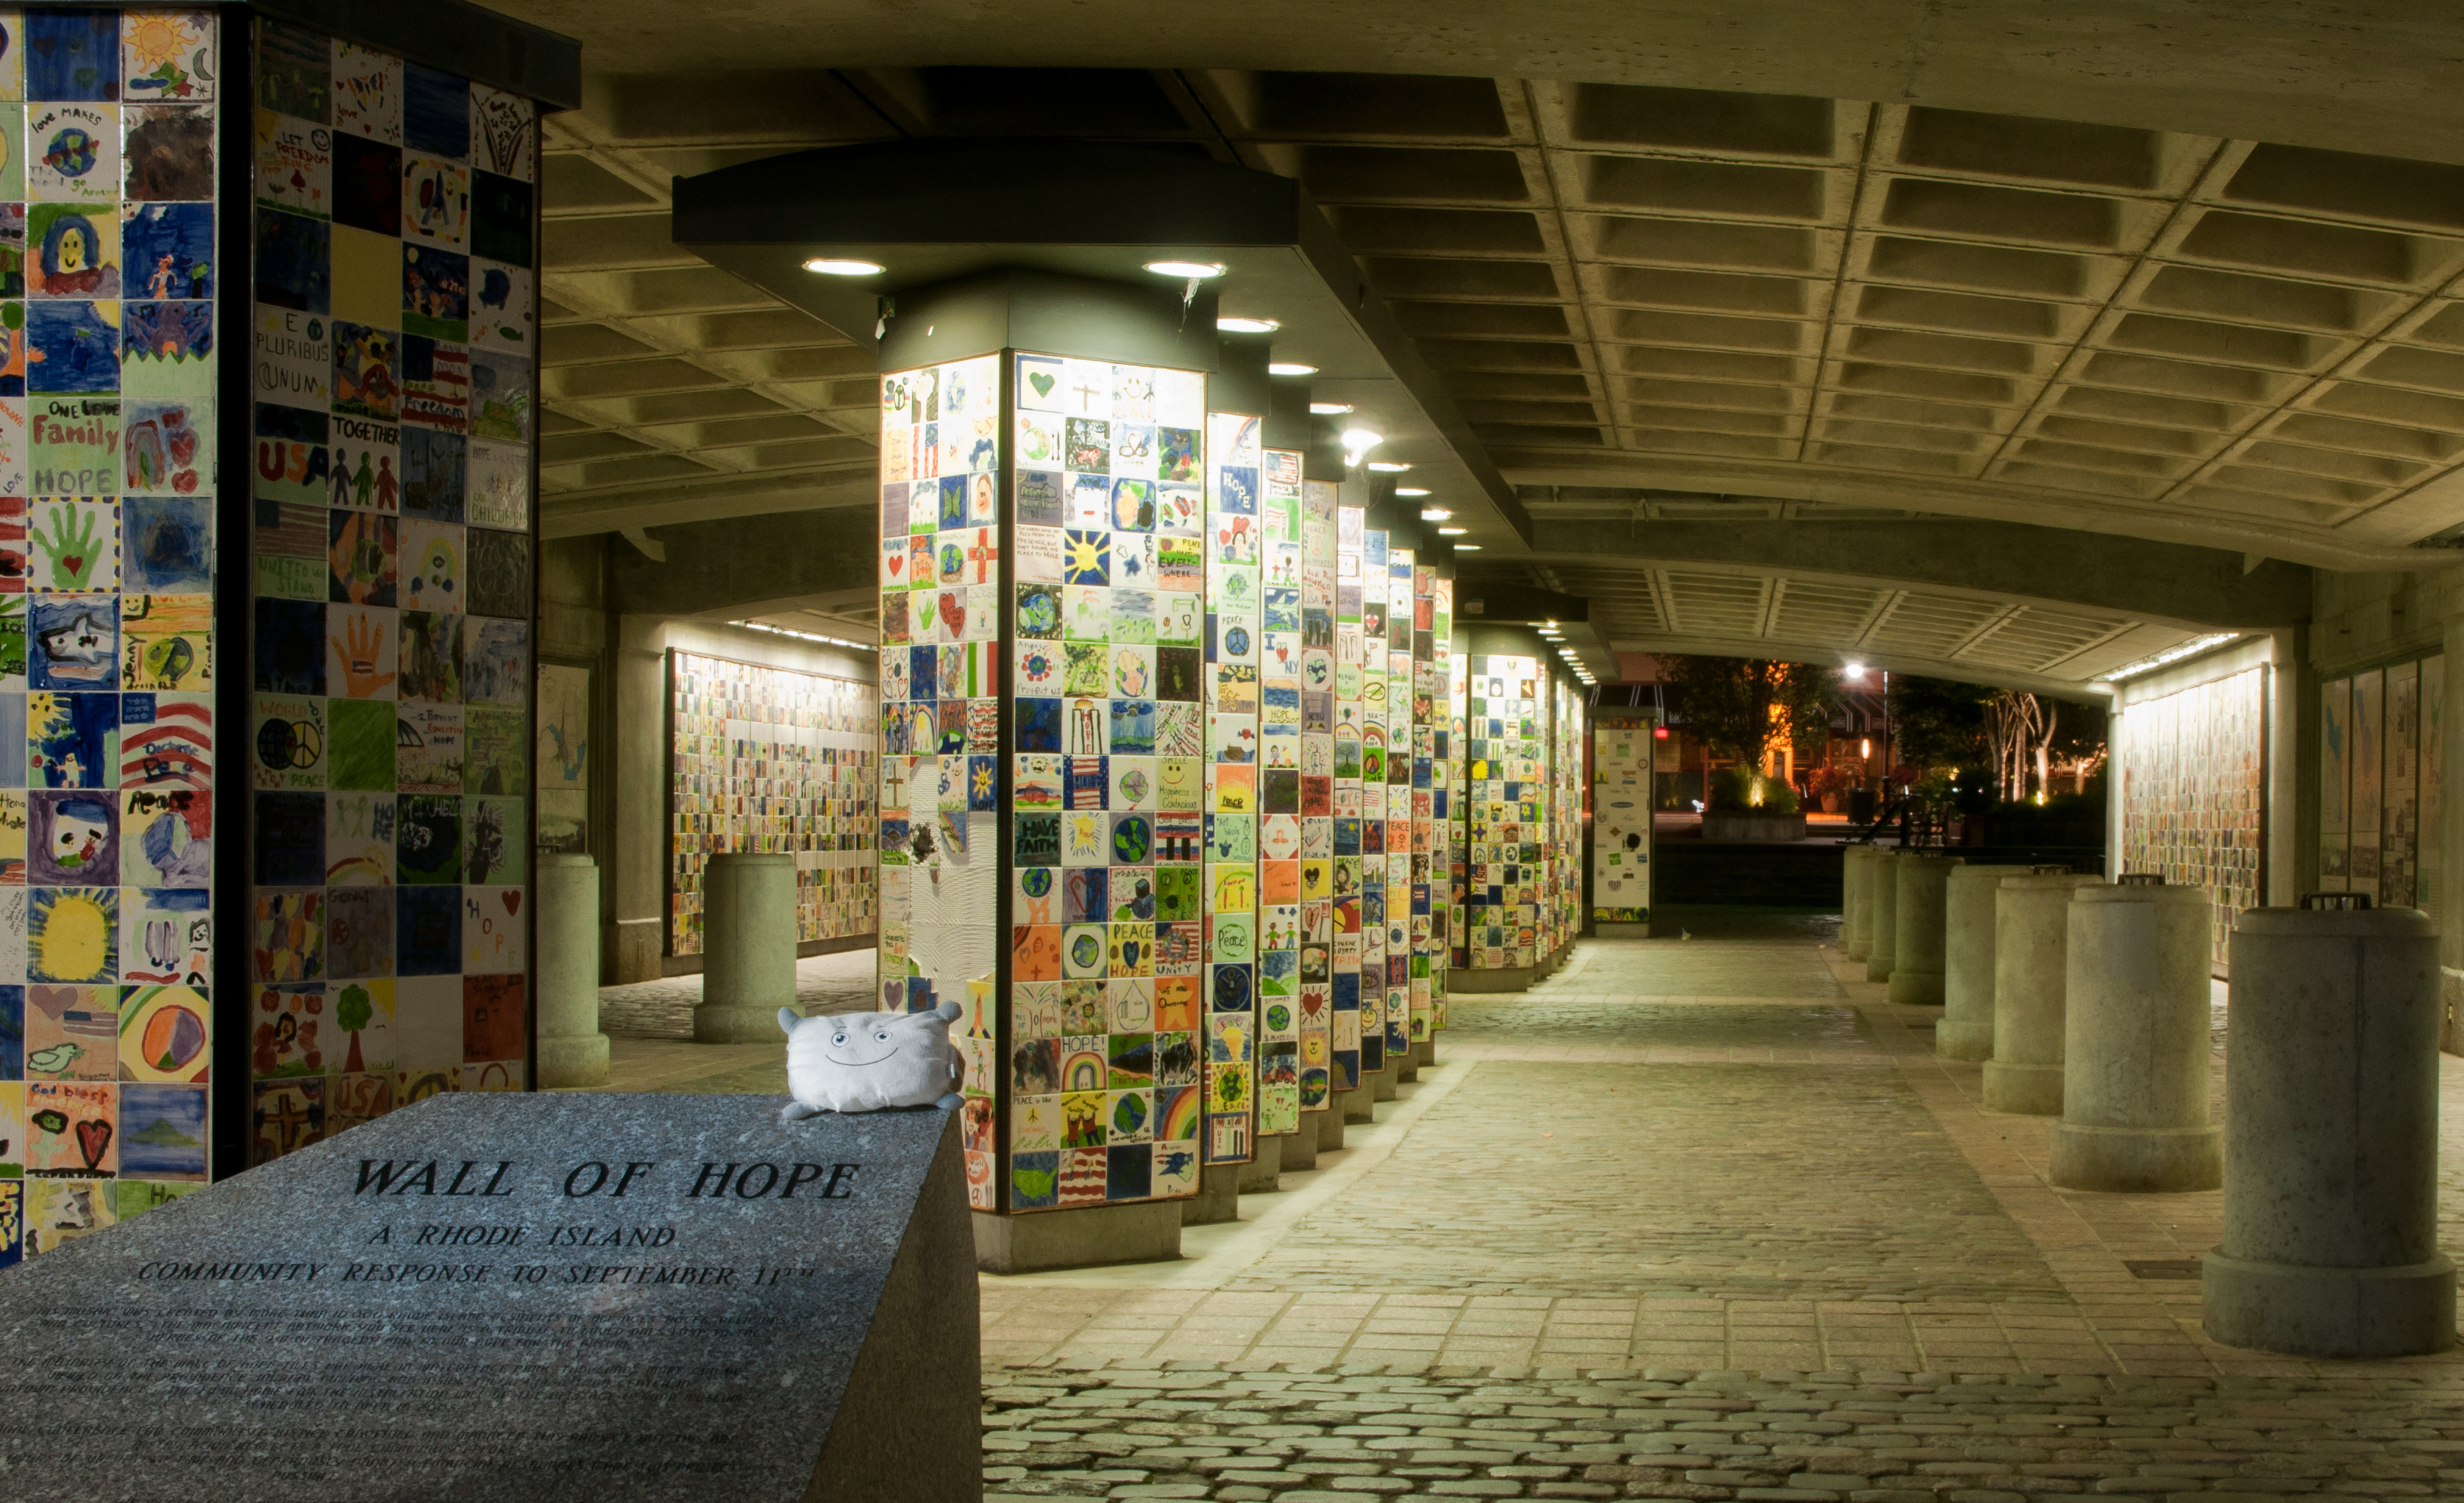 Pillow Featherbed at the Wall of Hope, a 9/11 memorial in Providence RI